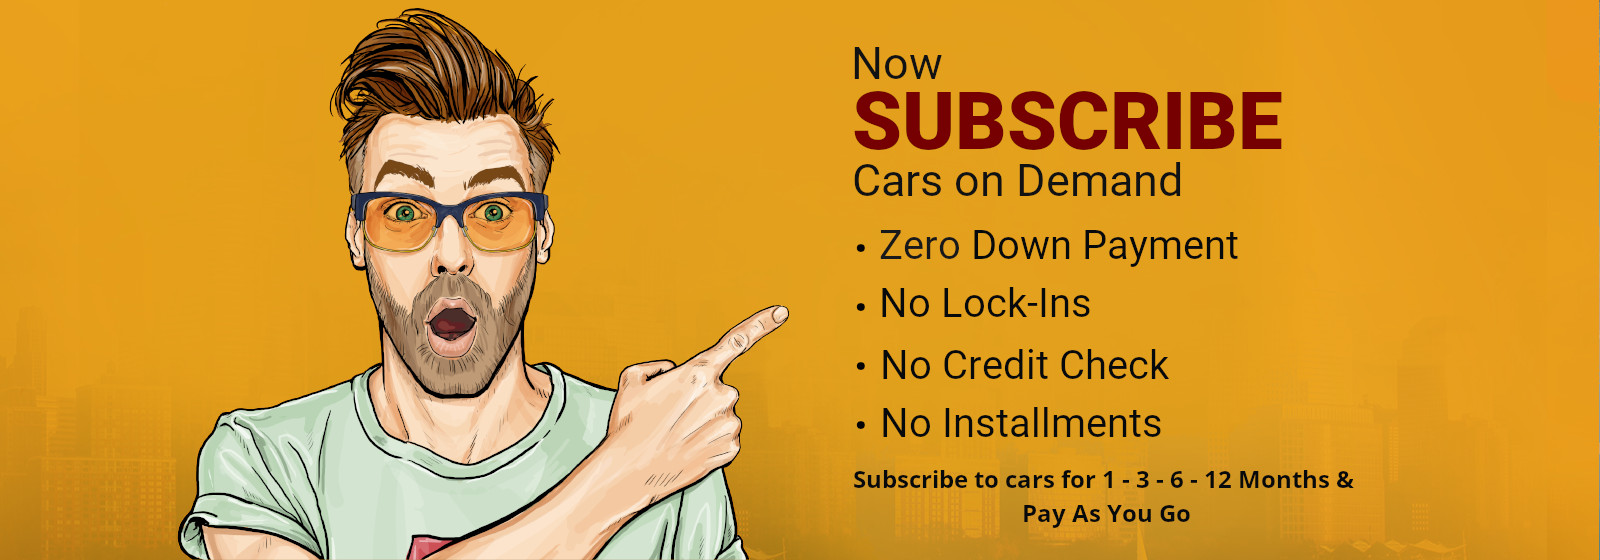 selfdrive.ae : Now Subscribe Cars On Demand